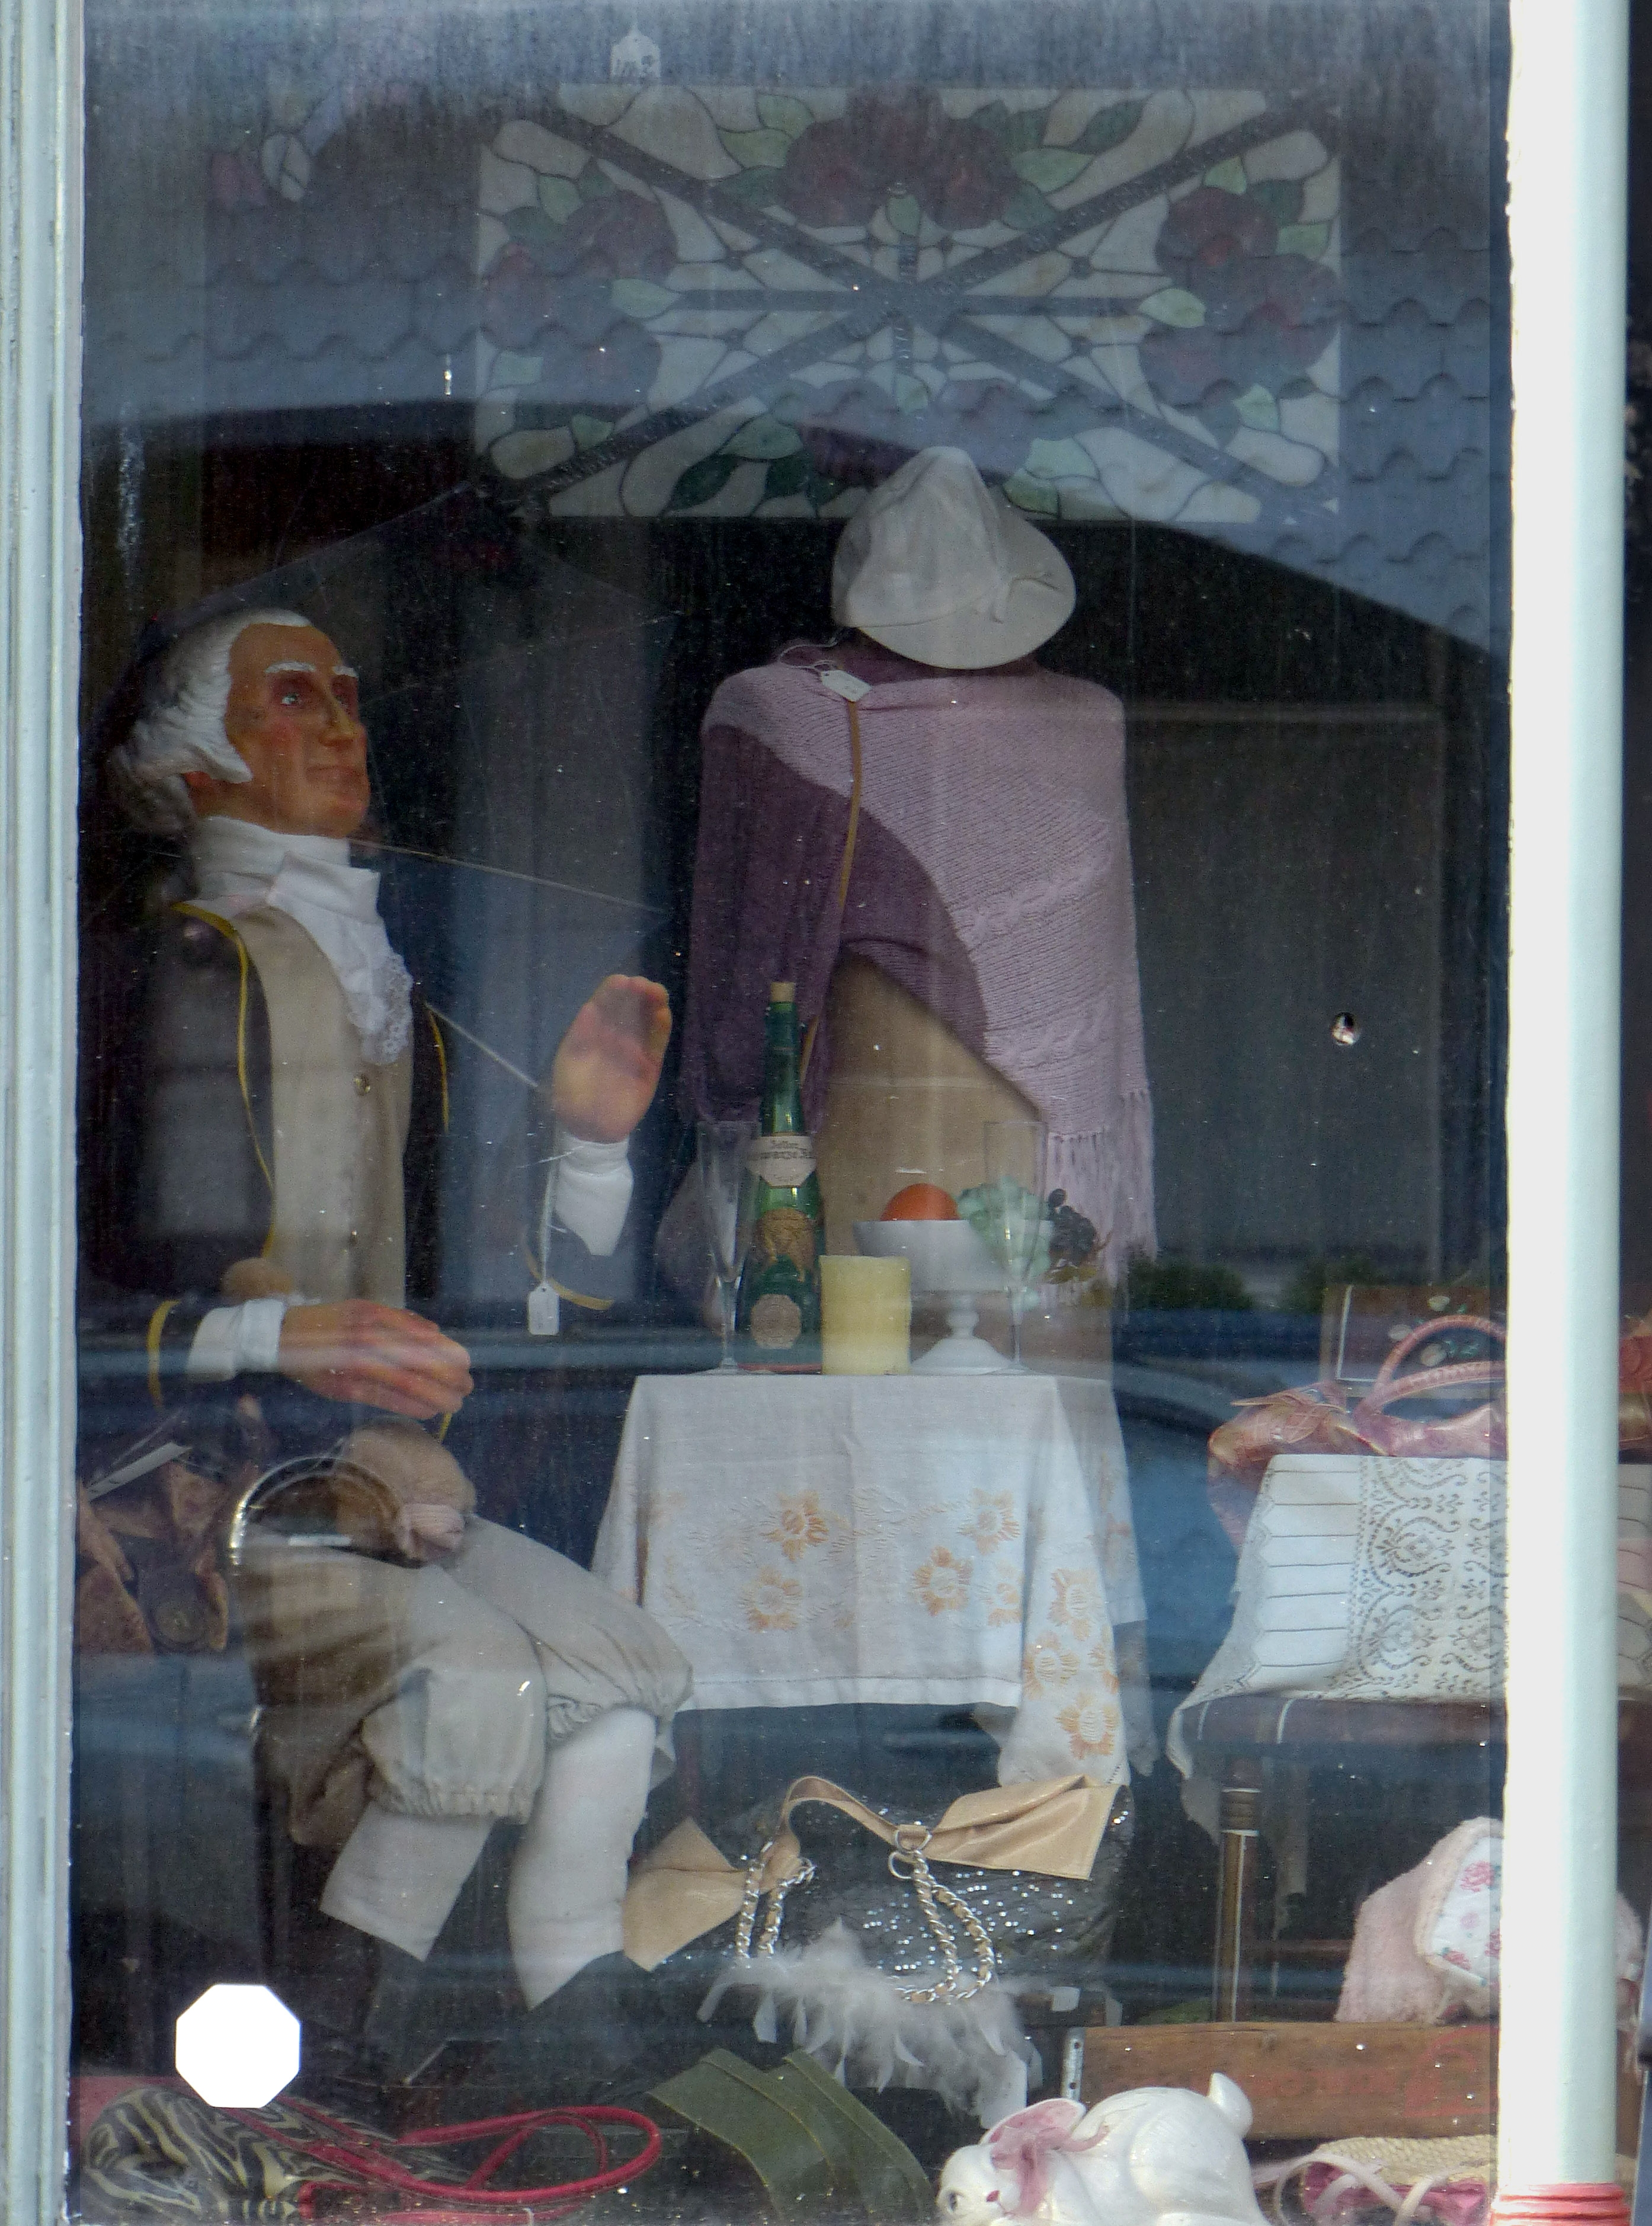 George Washington<br>Waves from the window<br>of the Cherry Tree Shoppe